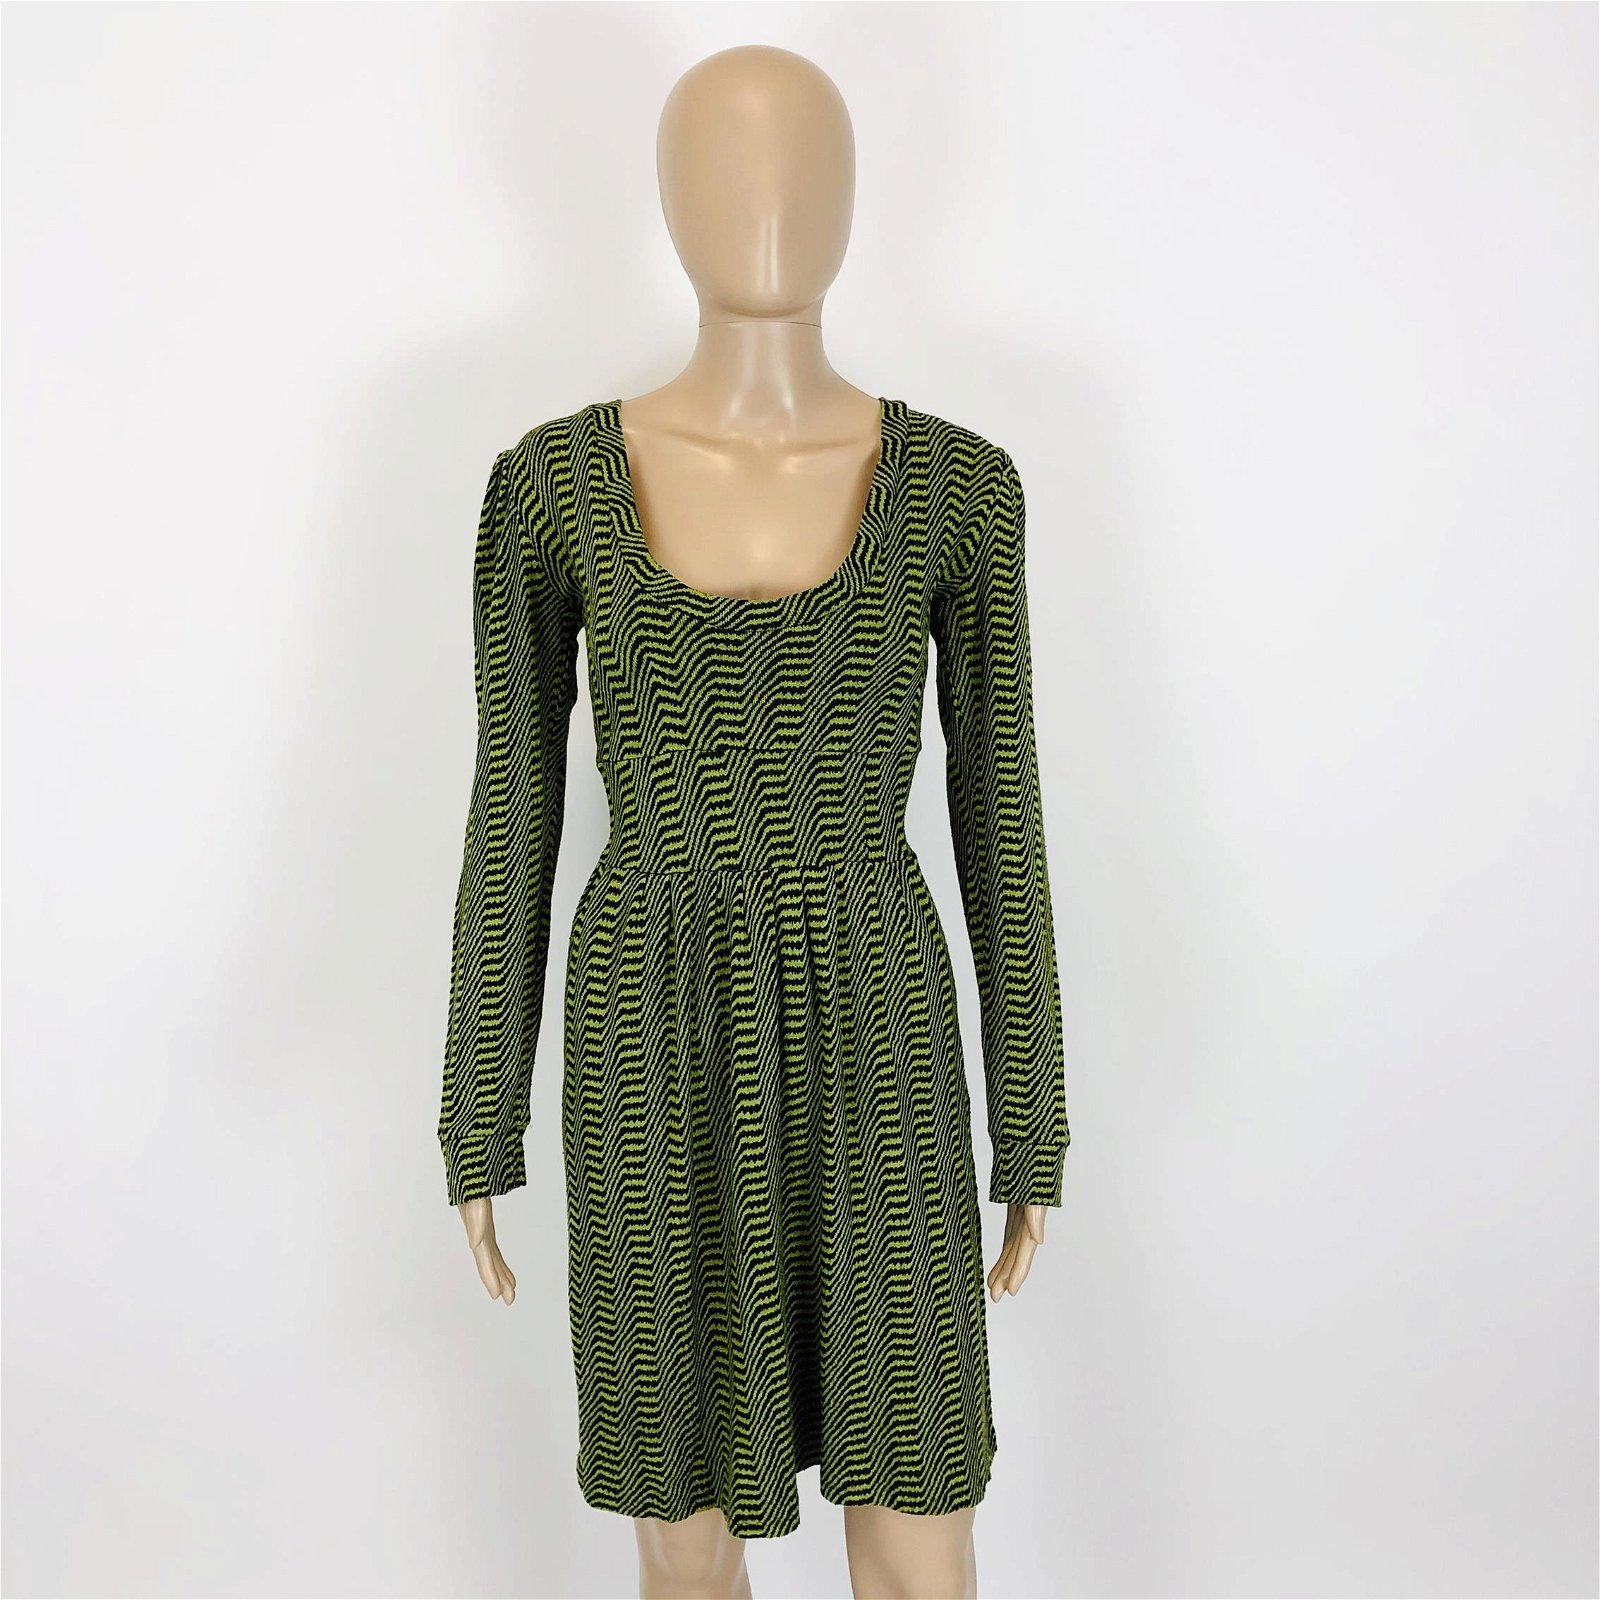 Women's Green Casual Dress Size US 12